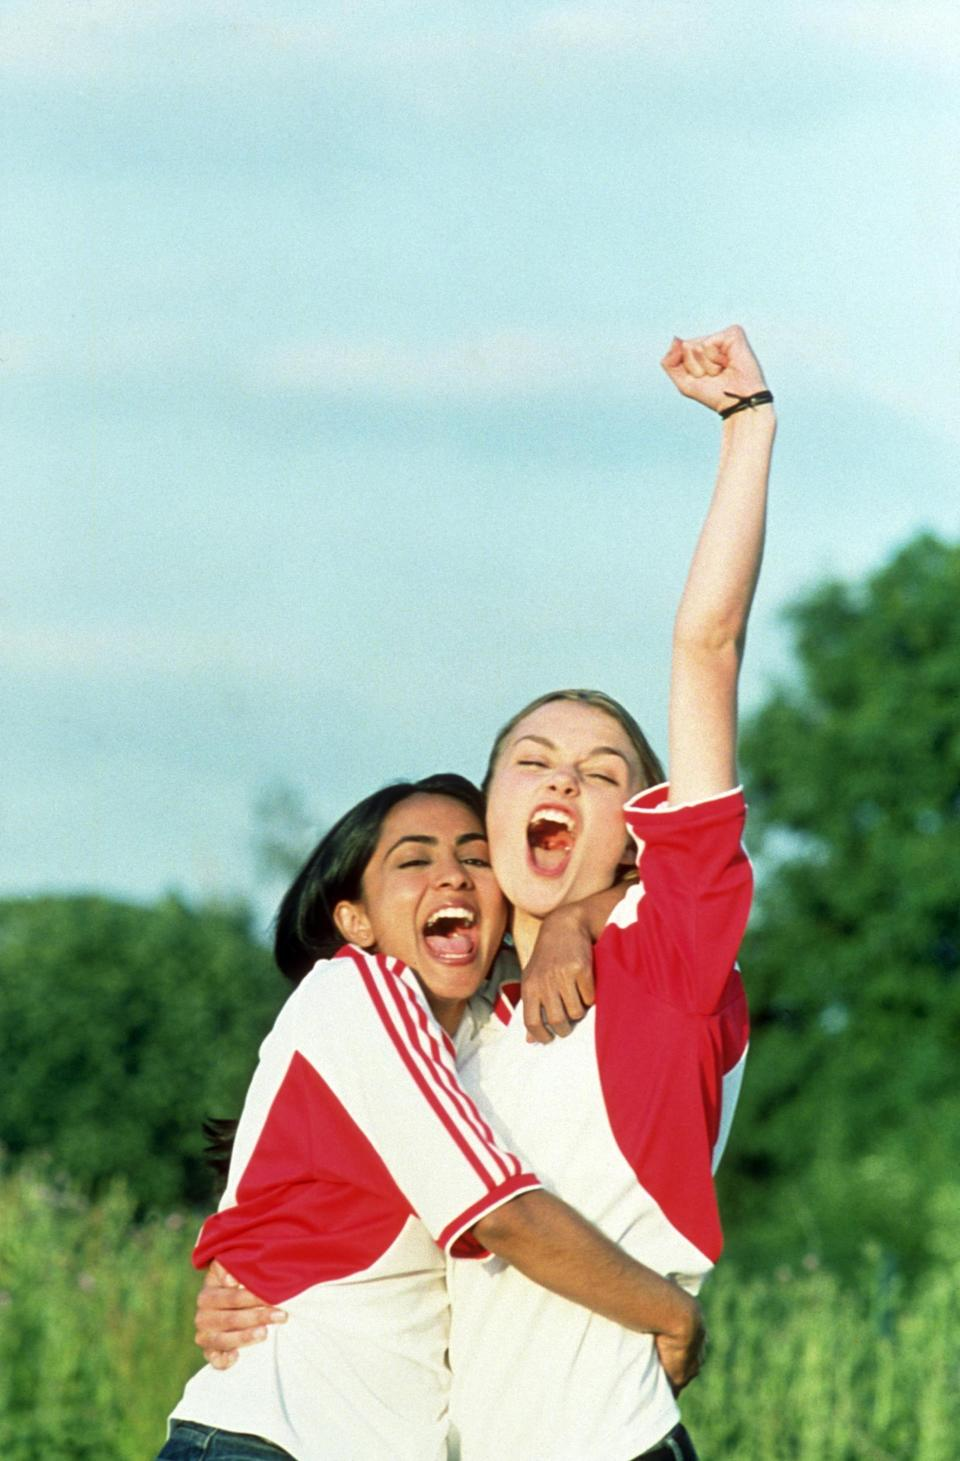 <p><em><strong>Bend It Like Beckham</strong></em> (2002)</p><p>Eighteen-year-old Jess Bhamra's (Parminder Nagra) parents have planned out her whole life. She's going to get married to a man they have chosen, and she's going to adhere to their strict values. But Jess wants to play soccer — and there's no room for soccer in their plan. Without her family's knowledge, Jess joins the local women's soccer league, and discovers she has a natural knack for the game. She becomes friends with Jules Paxton (Keira Knightley), falls for the coach (Jonathan Rhys Meyers), and challenges her family to accept her.</p><p><strong>Why You Should Watch It:</strong> <em>Bend It Like Beckham</em> is a joyous little indie, bursting at the seams with warmth and humour.</p>